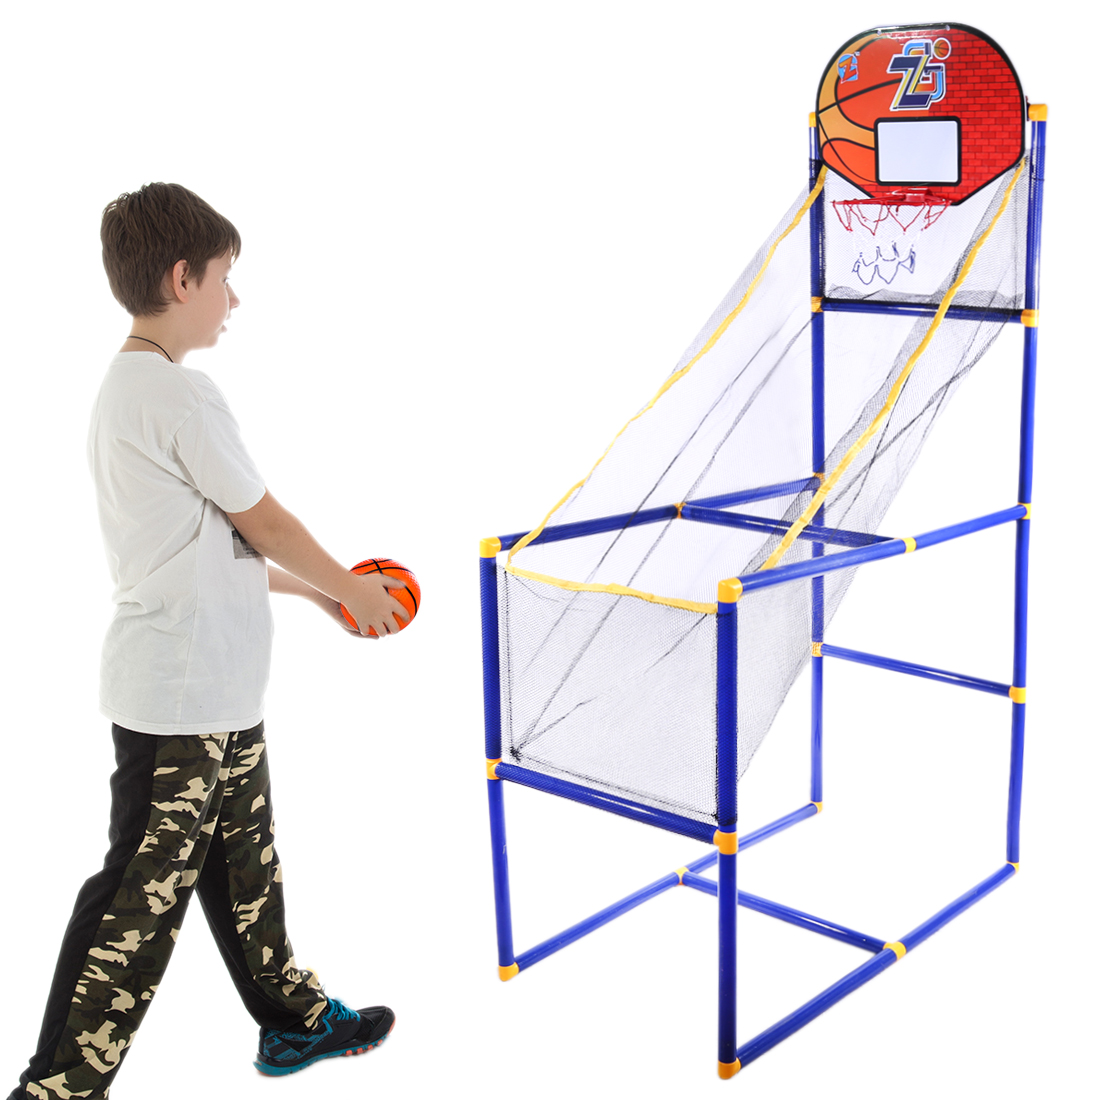 Rowsfire 149cm Children Sports Equipment Indoor Outdoor Basketball Shooting Toy for Kids Traning Exercise ZG270 7